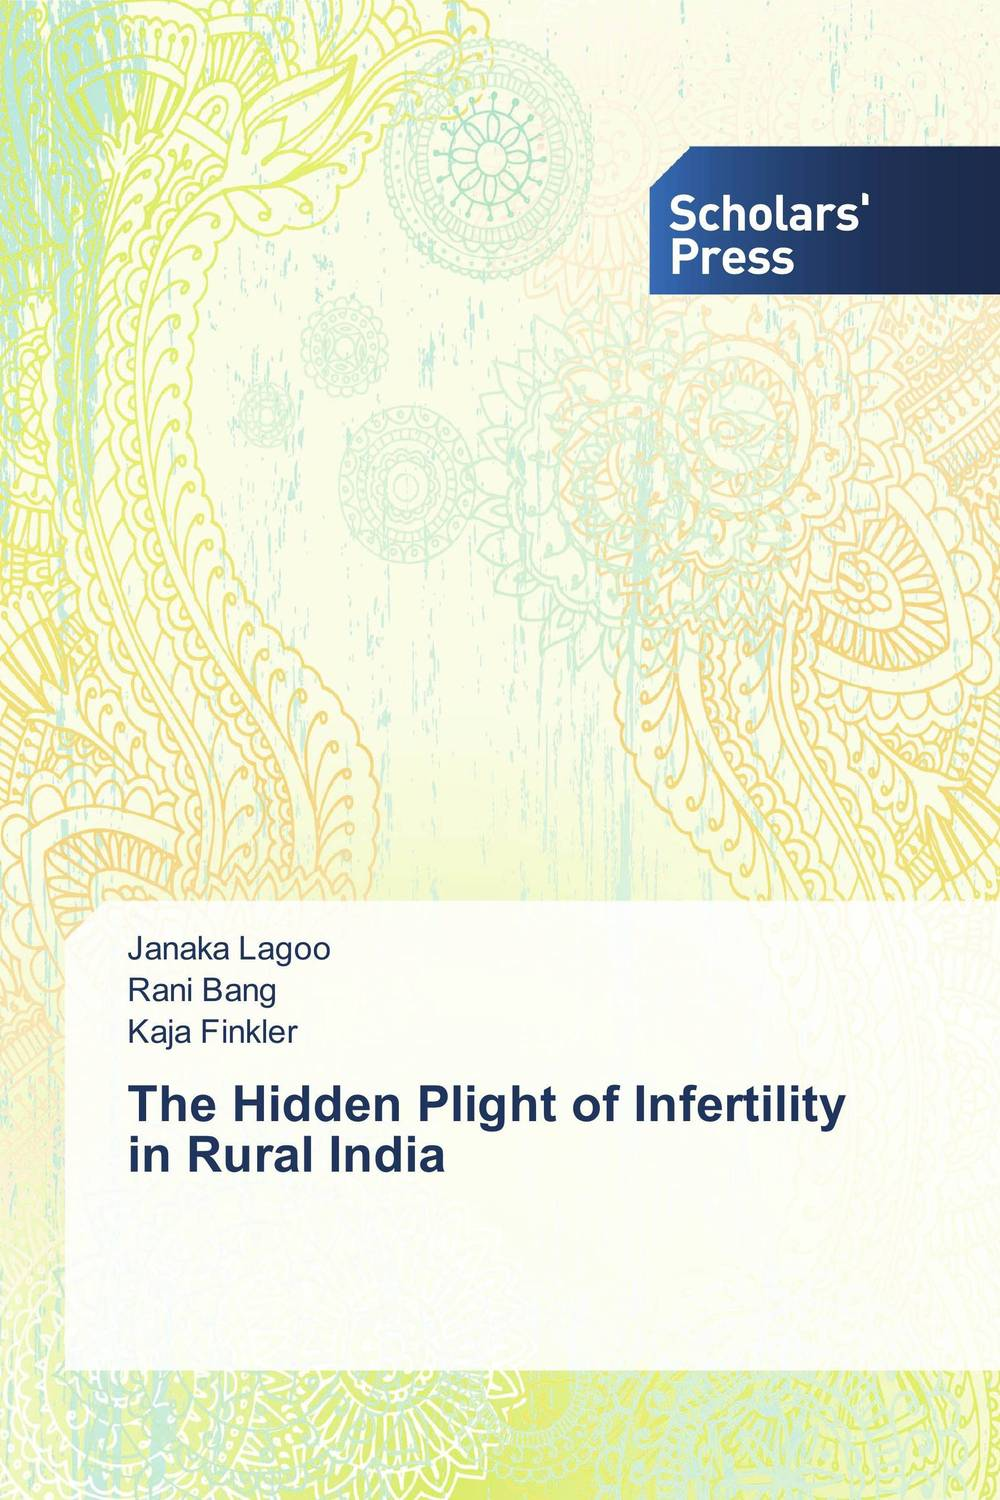 The Hidden Plight of Infertility in Rural India therapeutic management of infertility in cattle